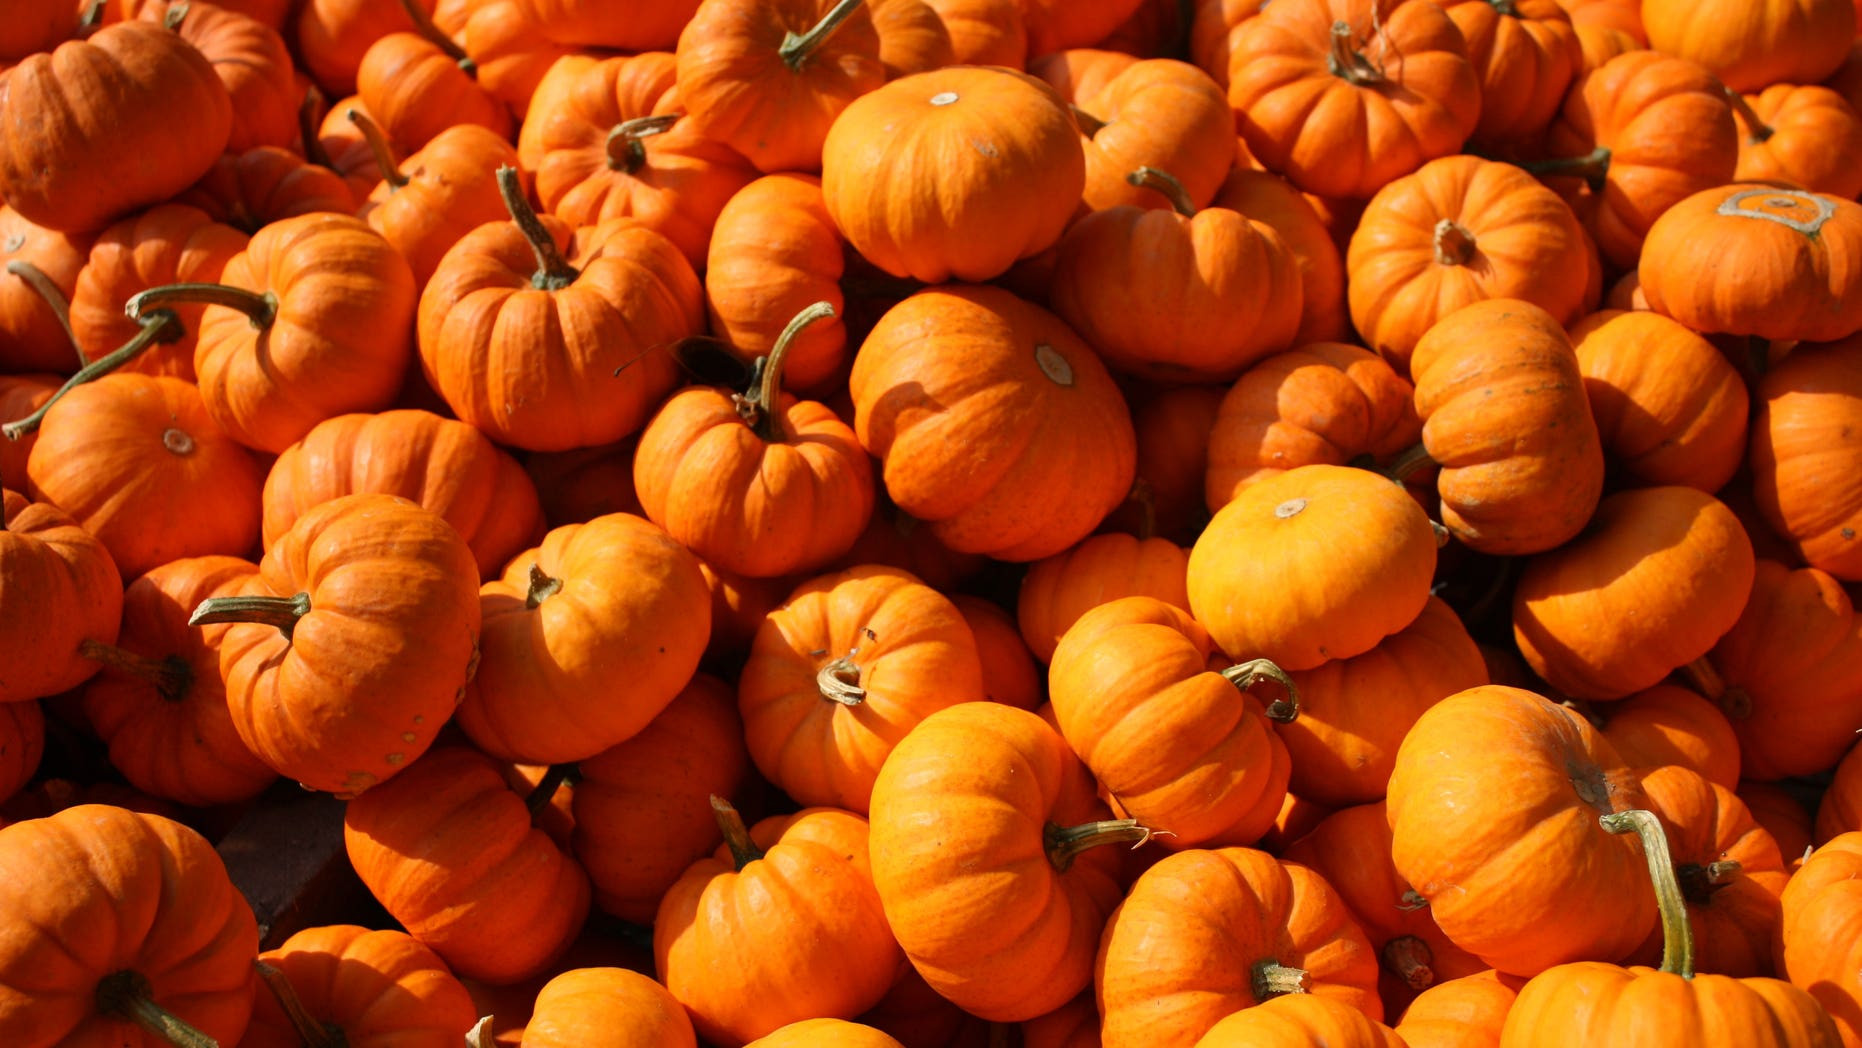 The survey of 2,000 Americans found that, of those who enjoy pumpkin spice treats, 41 percent say they'd give up carbs to get pumpkin spice coffee for life.